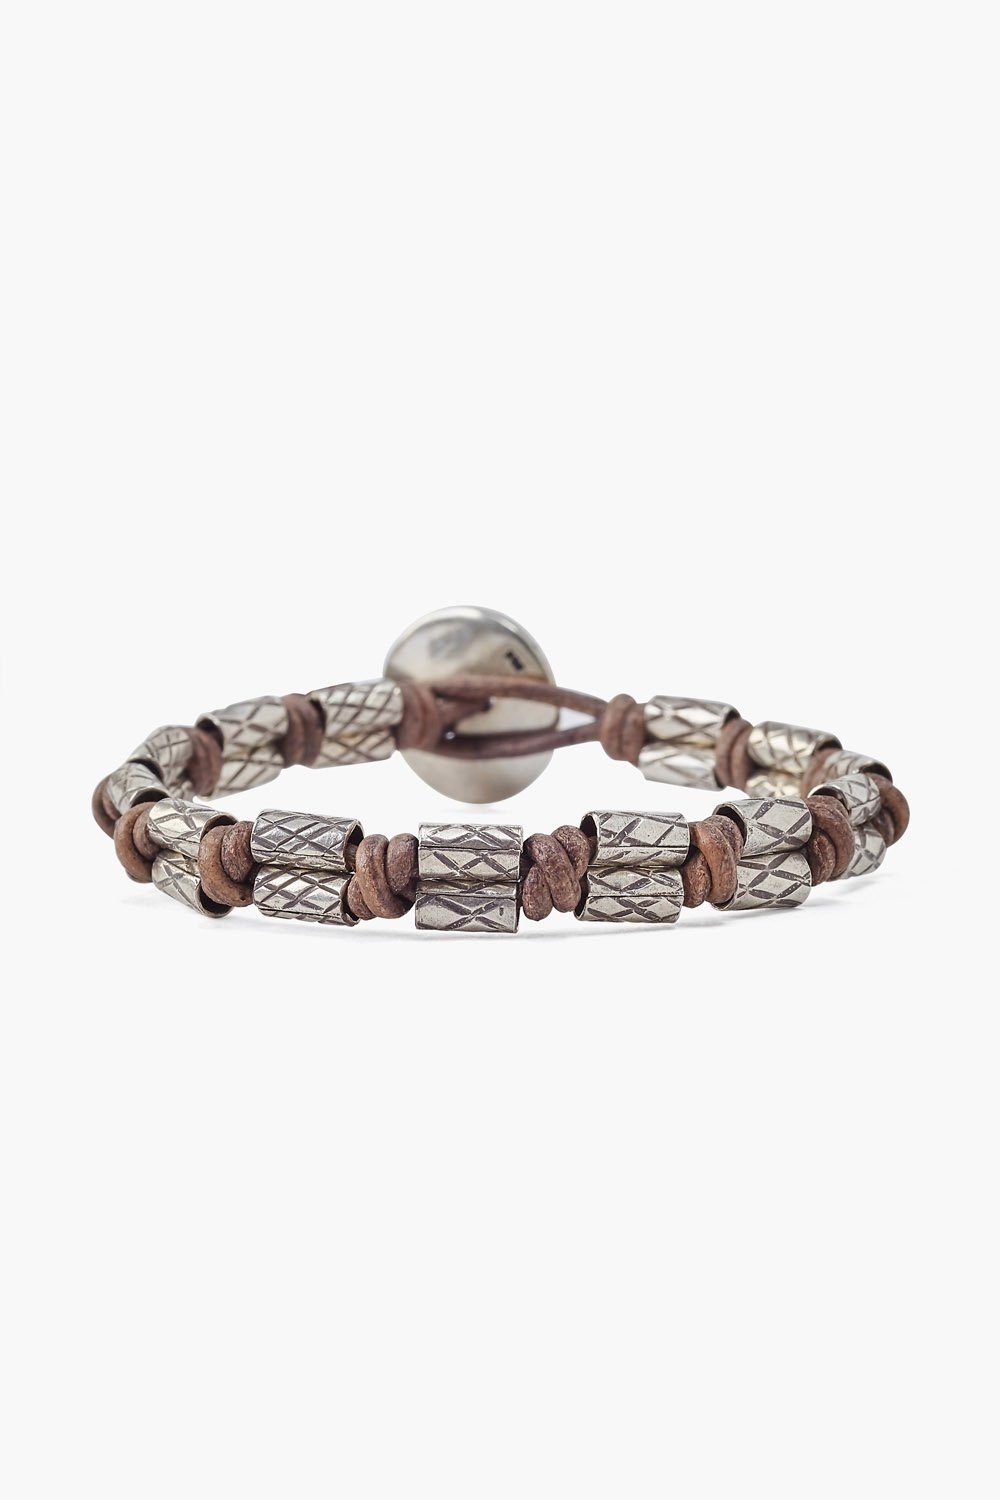 Etched Silver Heishi Single Wrap Bracelet on Natural Grey Leather